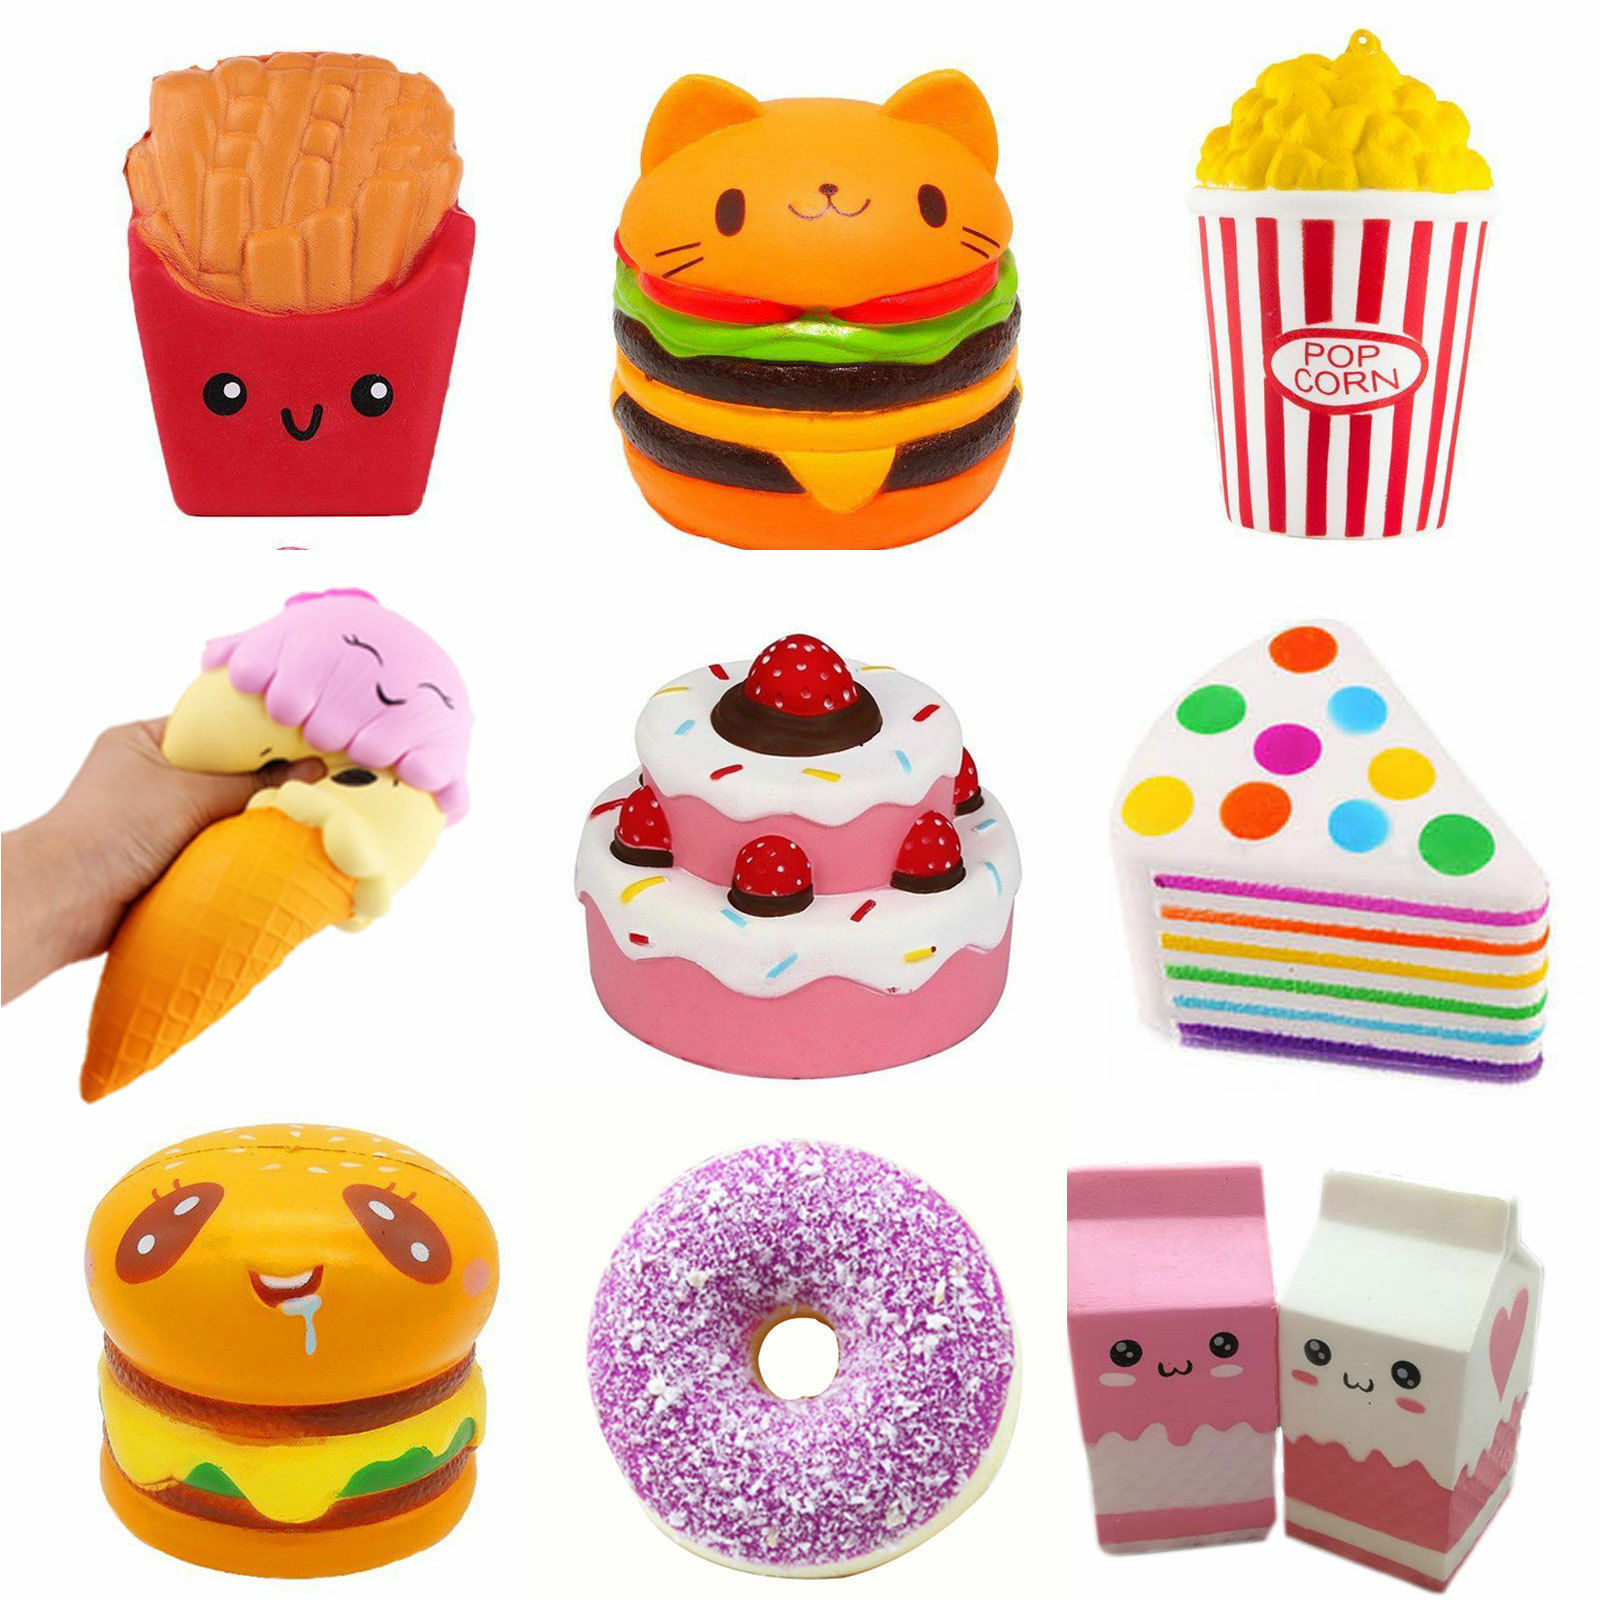 A Toy Donut Shop For Kids